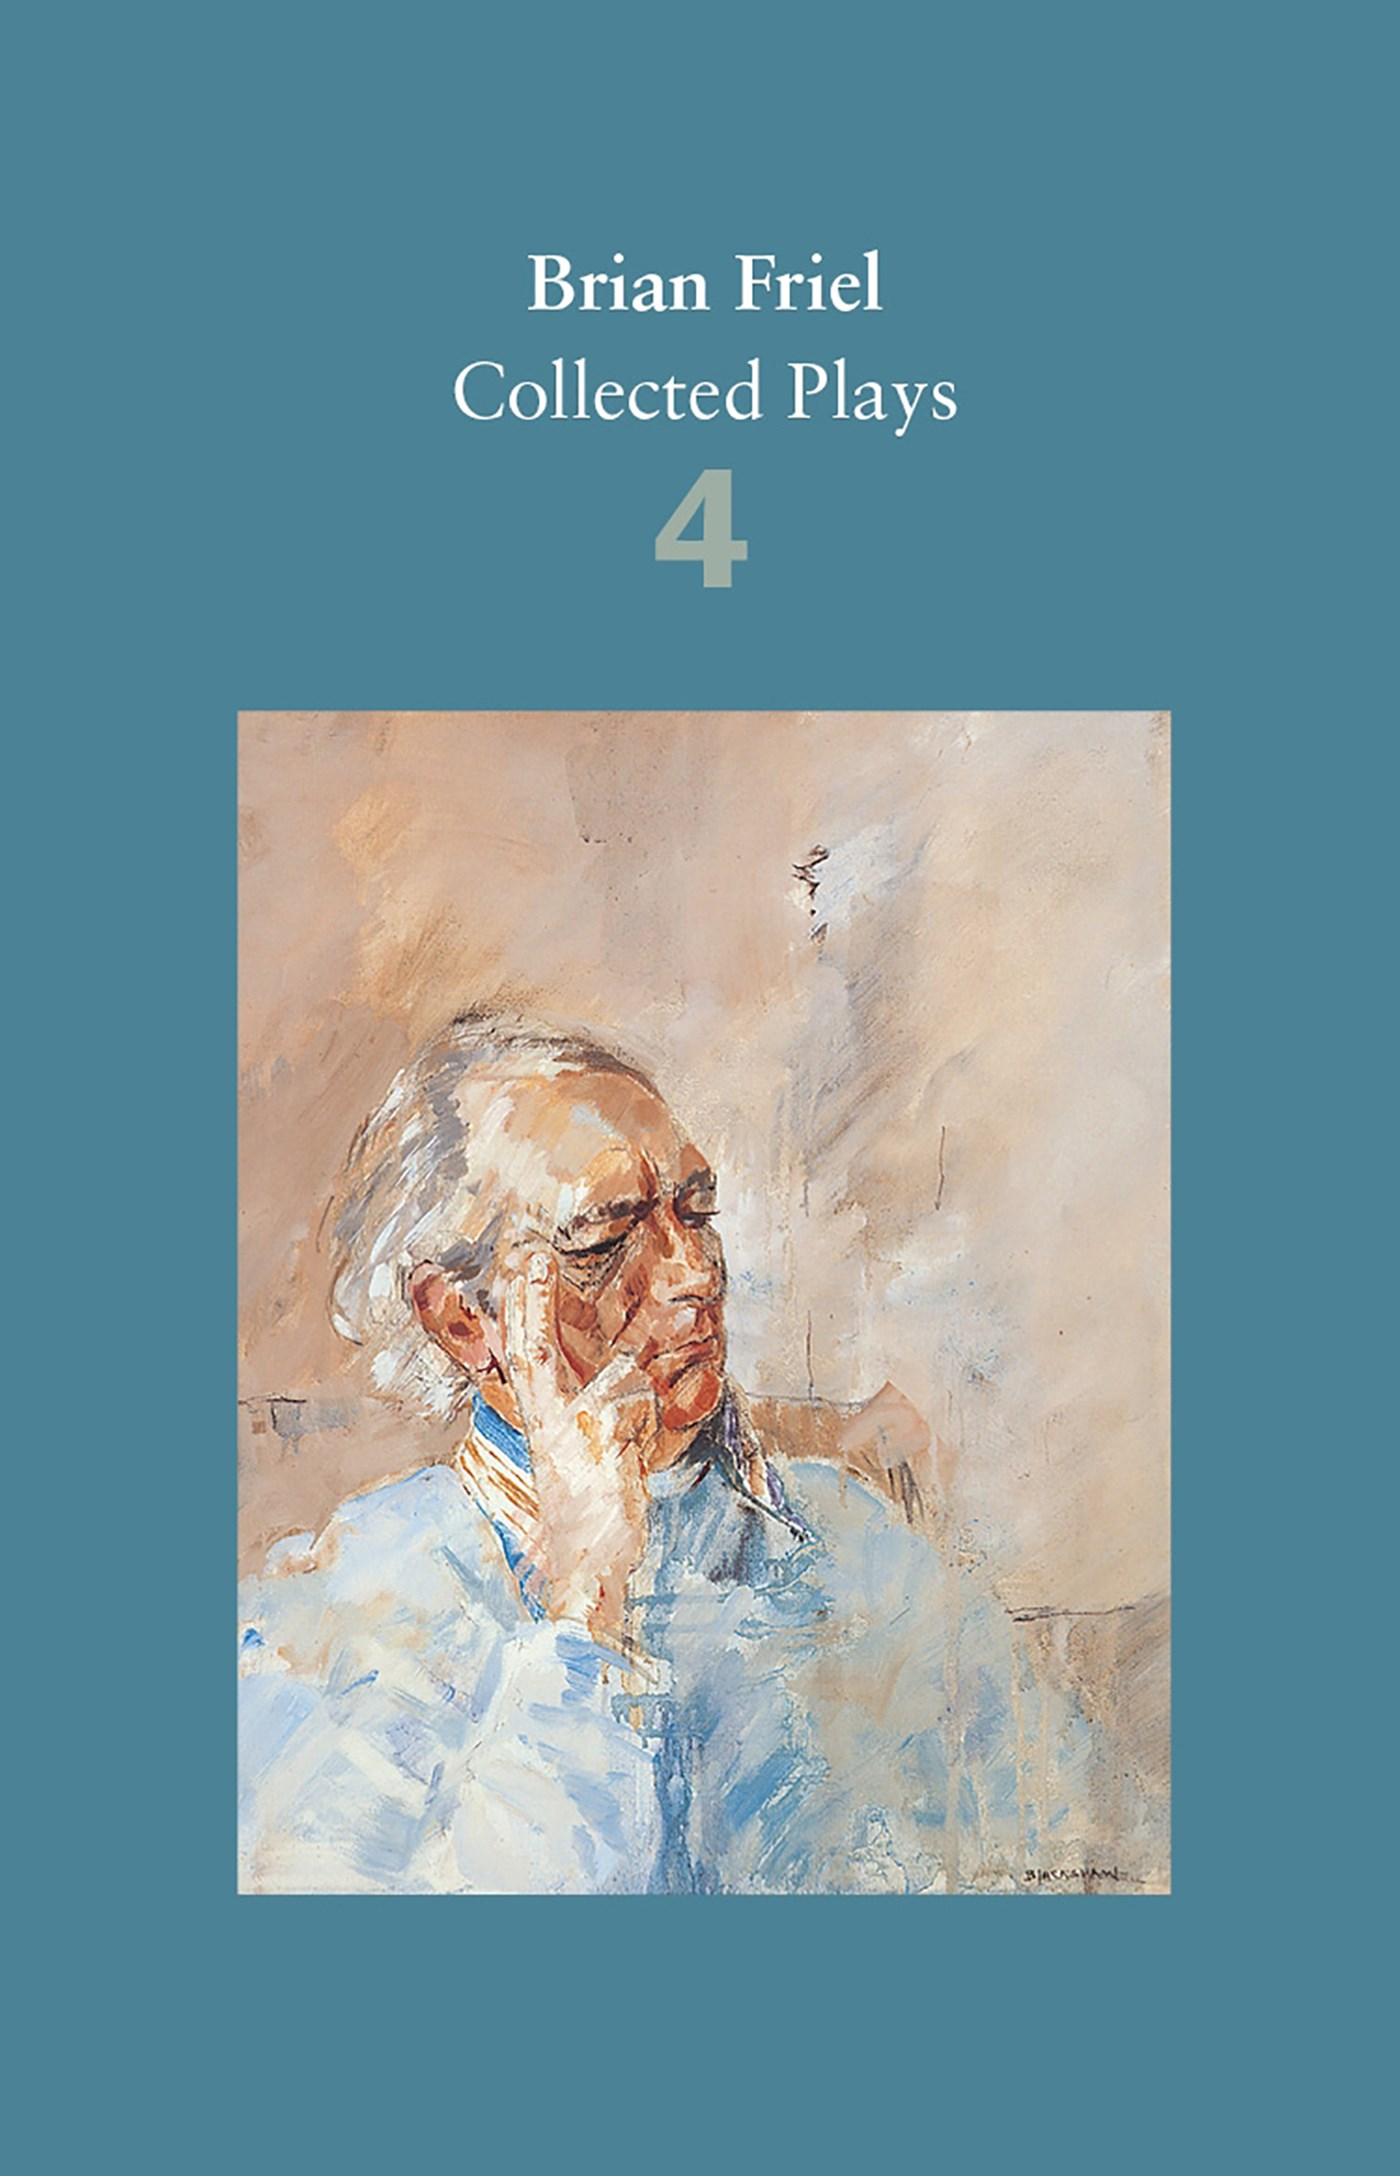 Brian Friel: Collected Plays - Volume 4